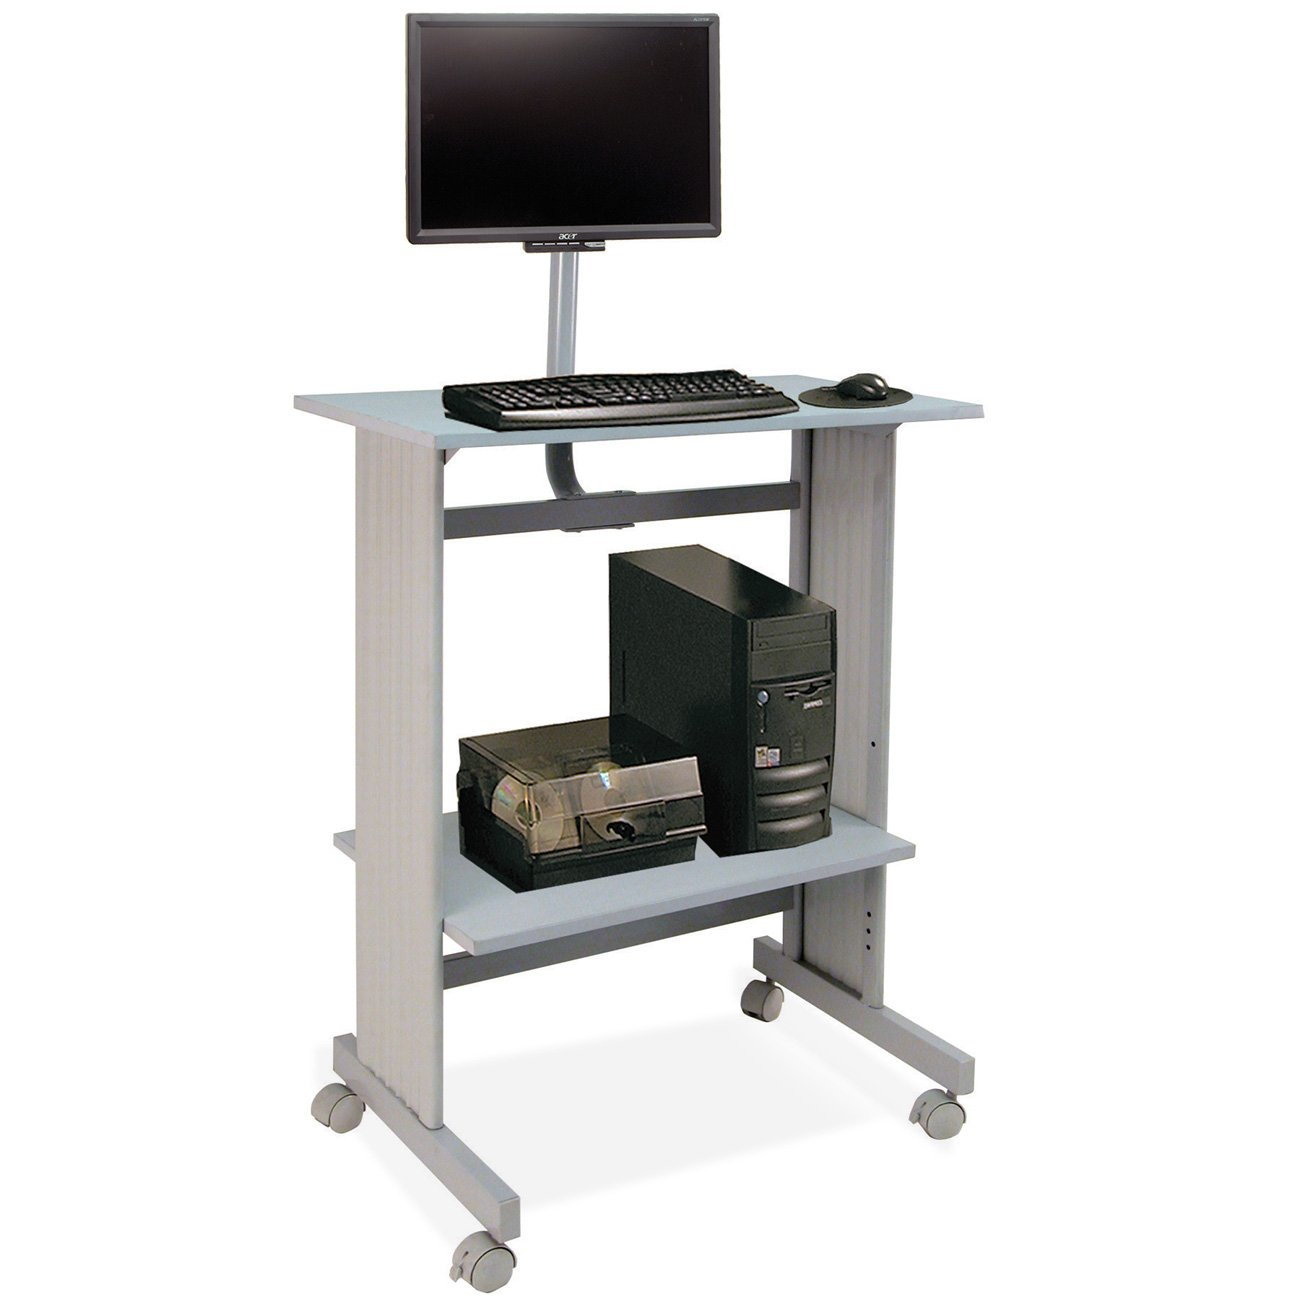 Buddy Products Stand Up Height Workstation with LCD Mount, 20 x 56 x 29 Inches, Gray (6464-18)